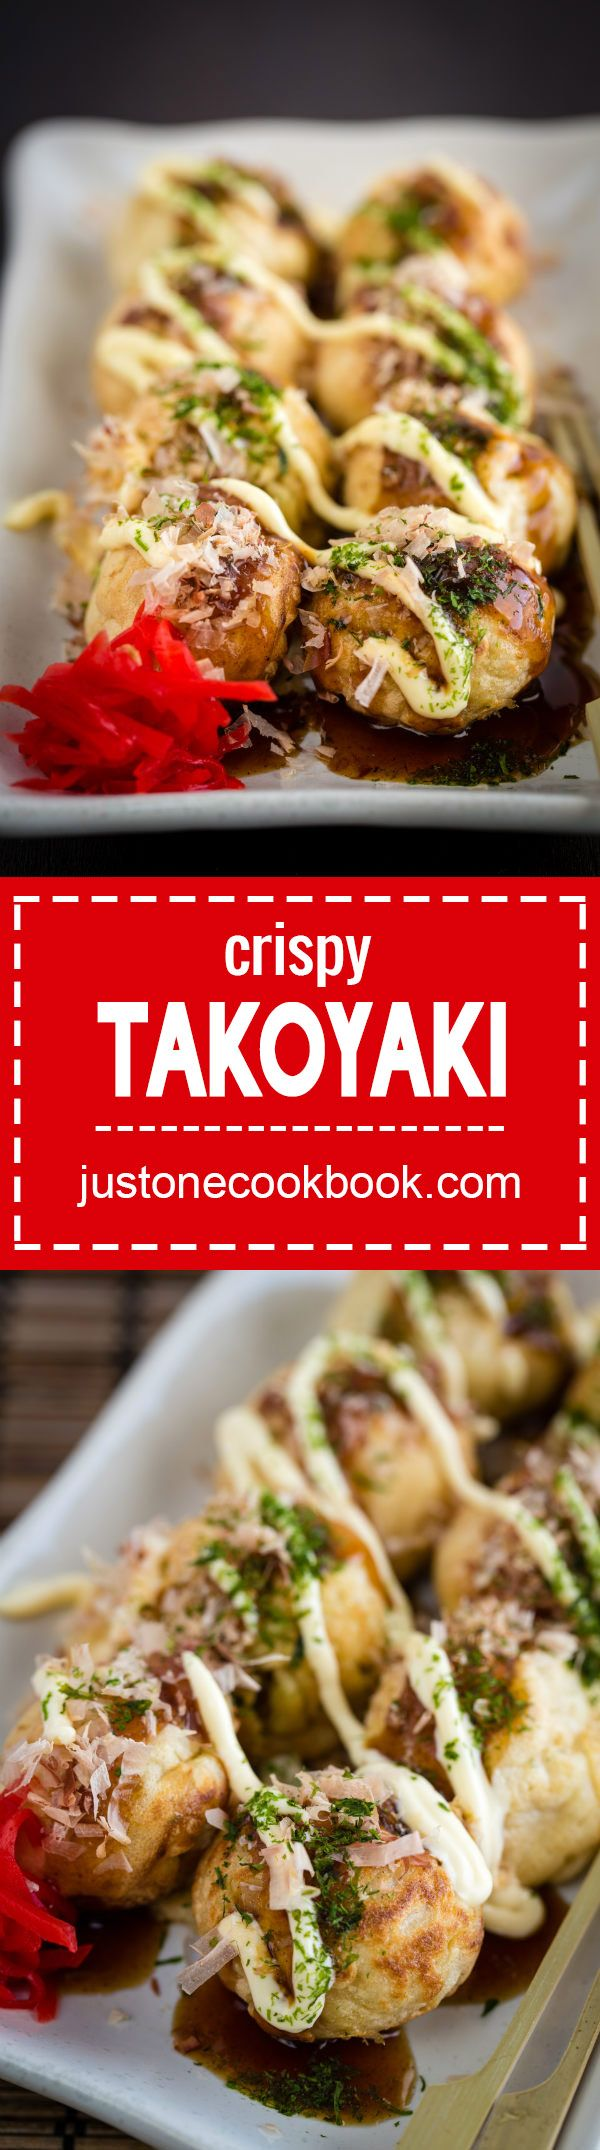 Japanese cuisine recipes easy